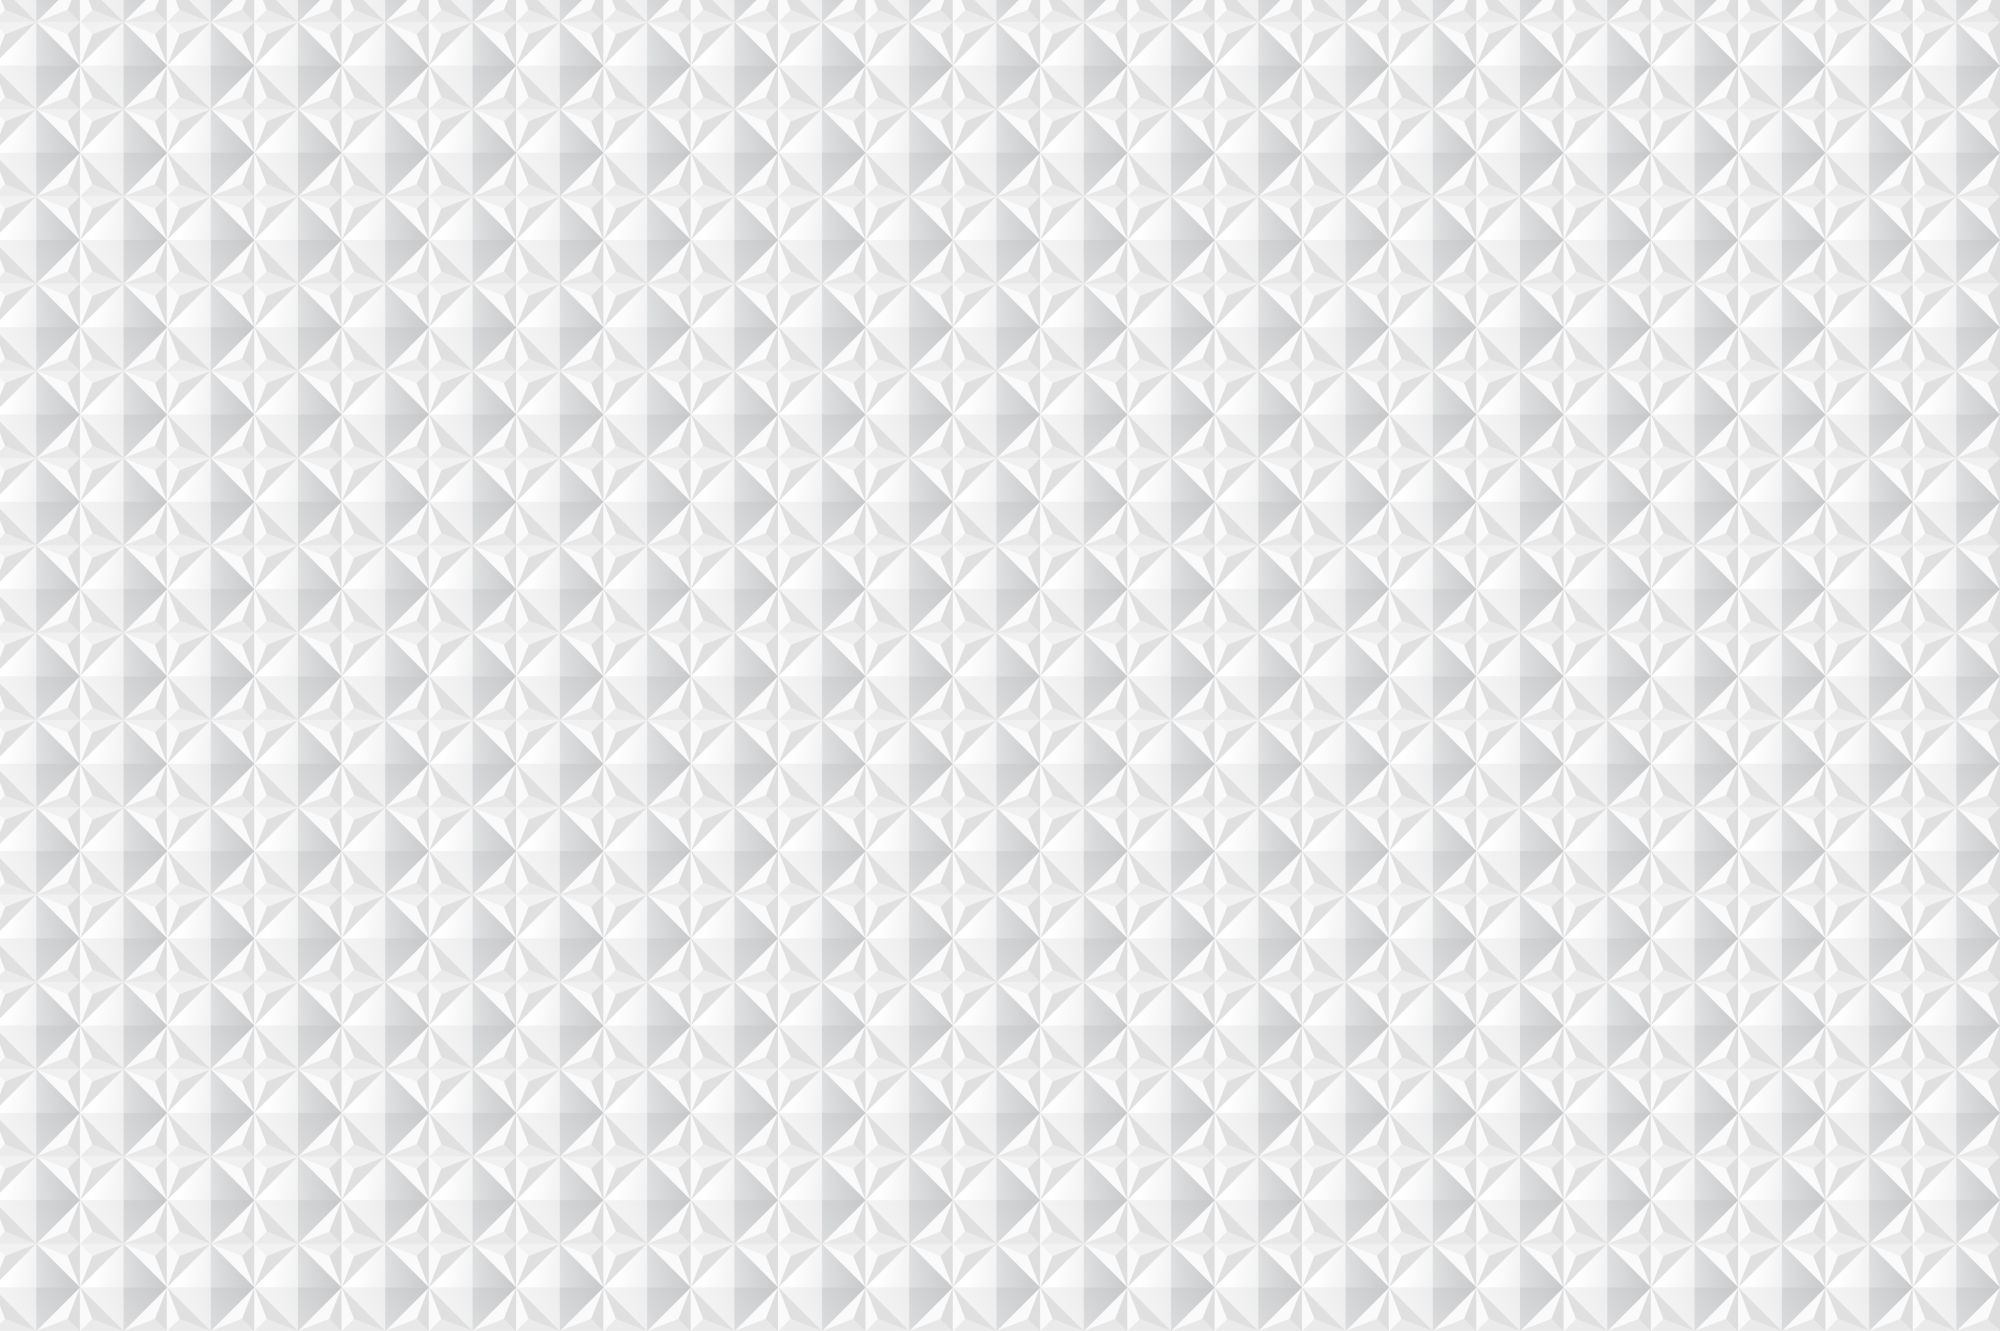 Seamless White 3d Textures. Swatches example image 8